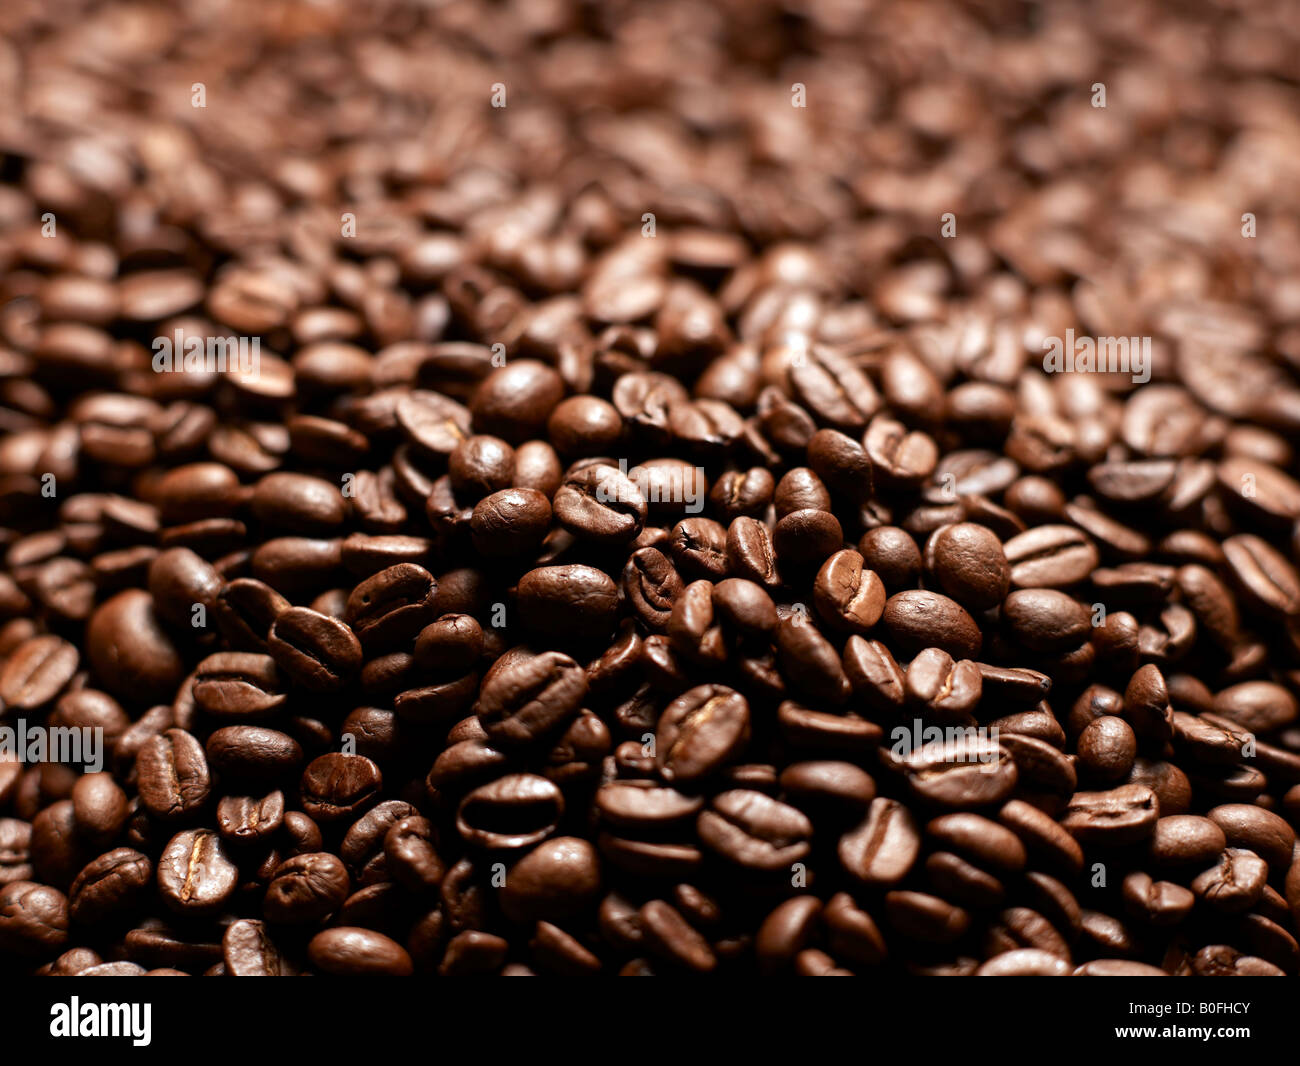 coffee beens - Stock Image